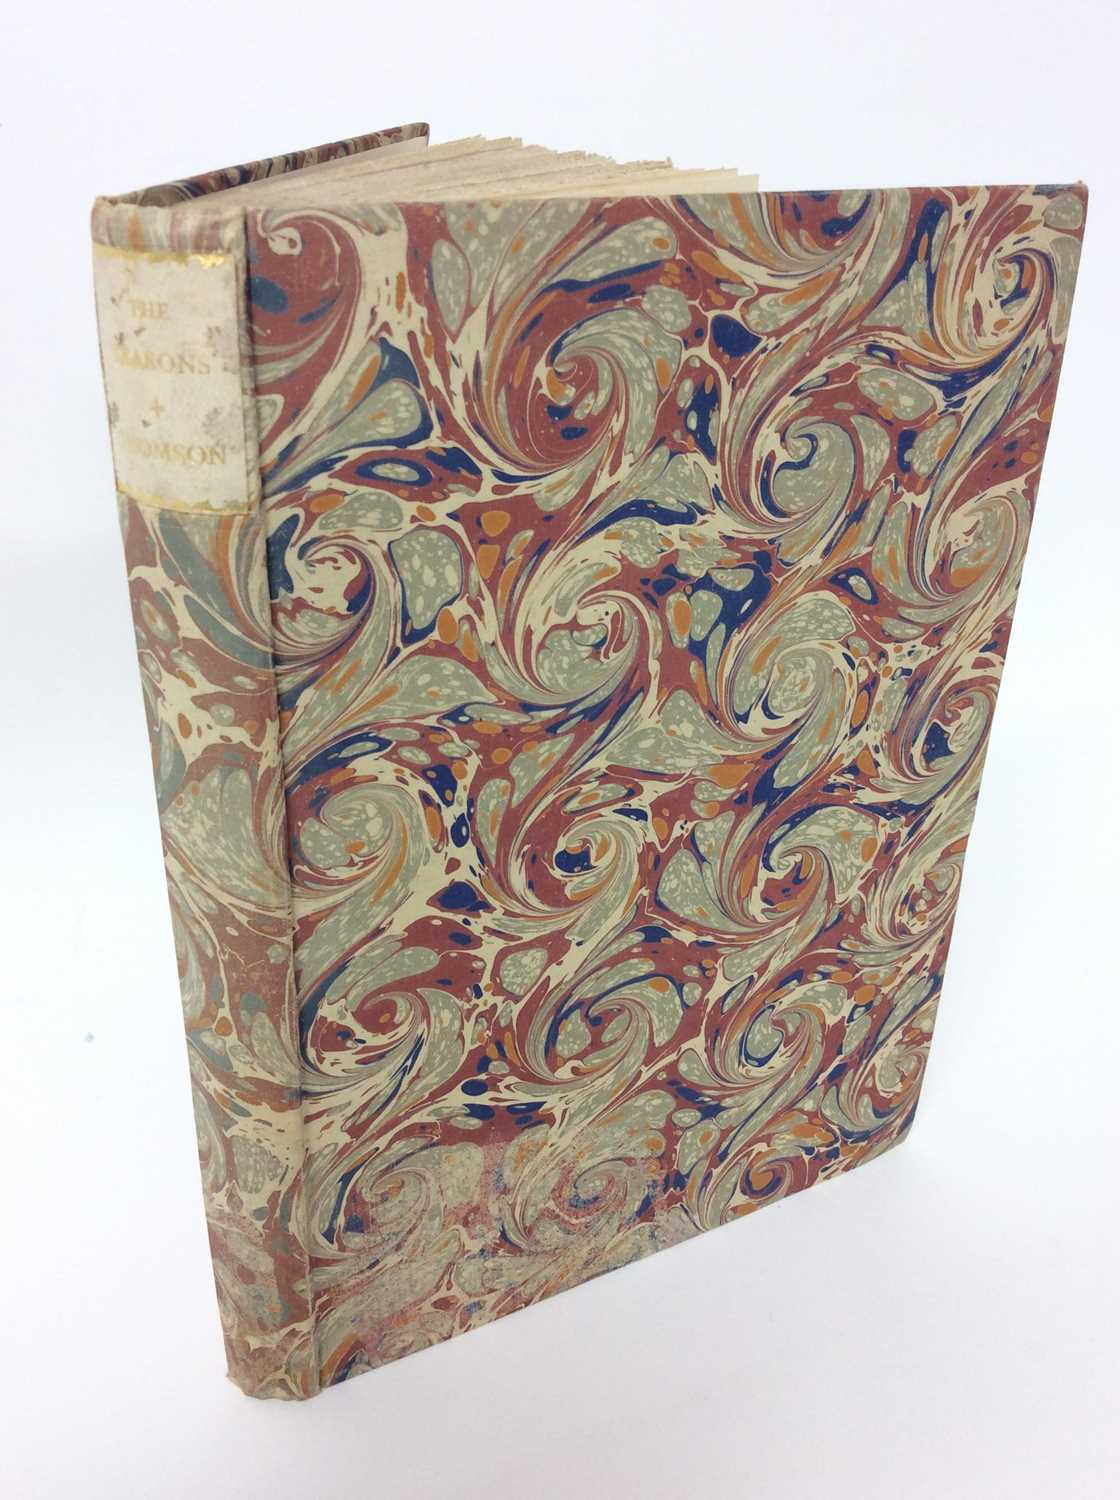 The Seasons by James Thomson, Nonesuch Press 1927, numbered 186 out of 1,500 copies, 1927